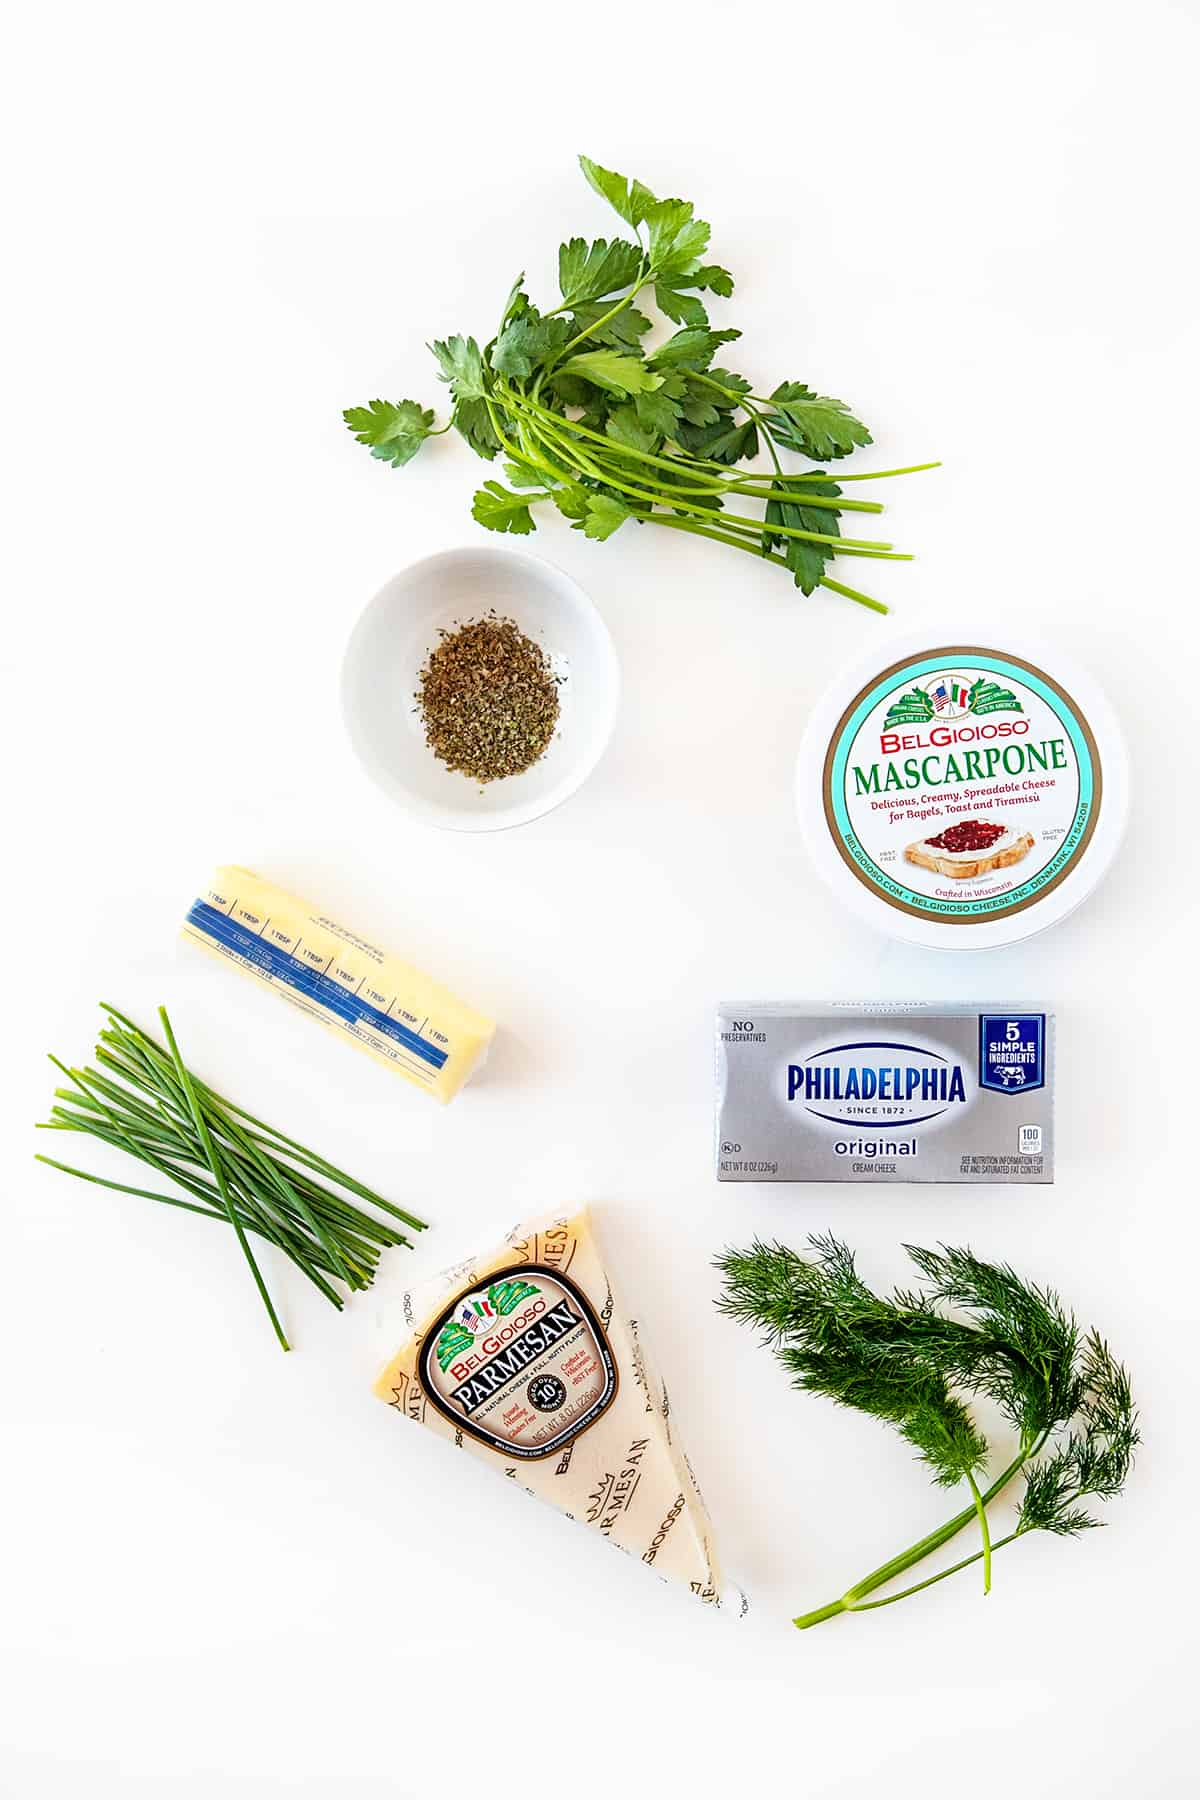 Ingredients for homemade boursin cheese recipe